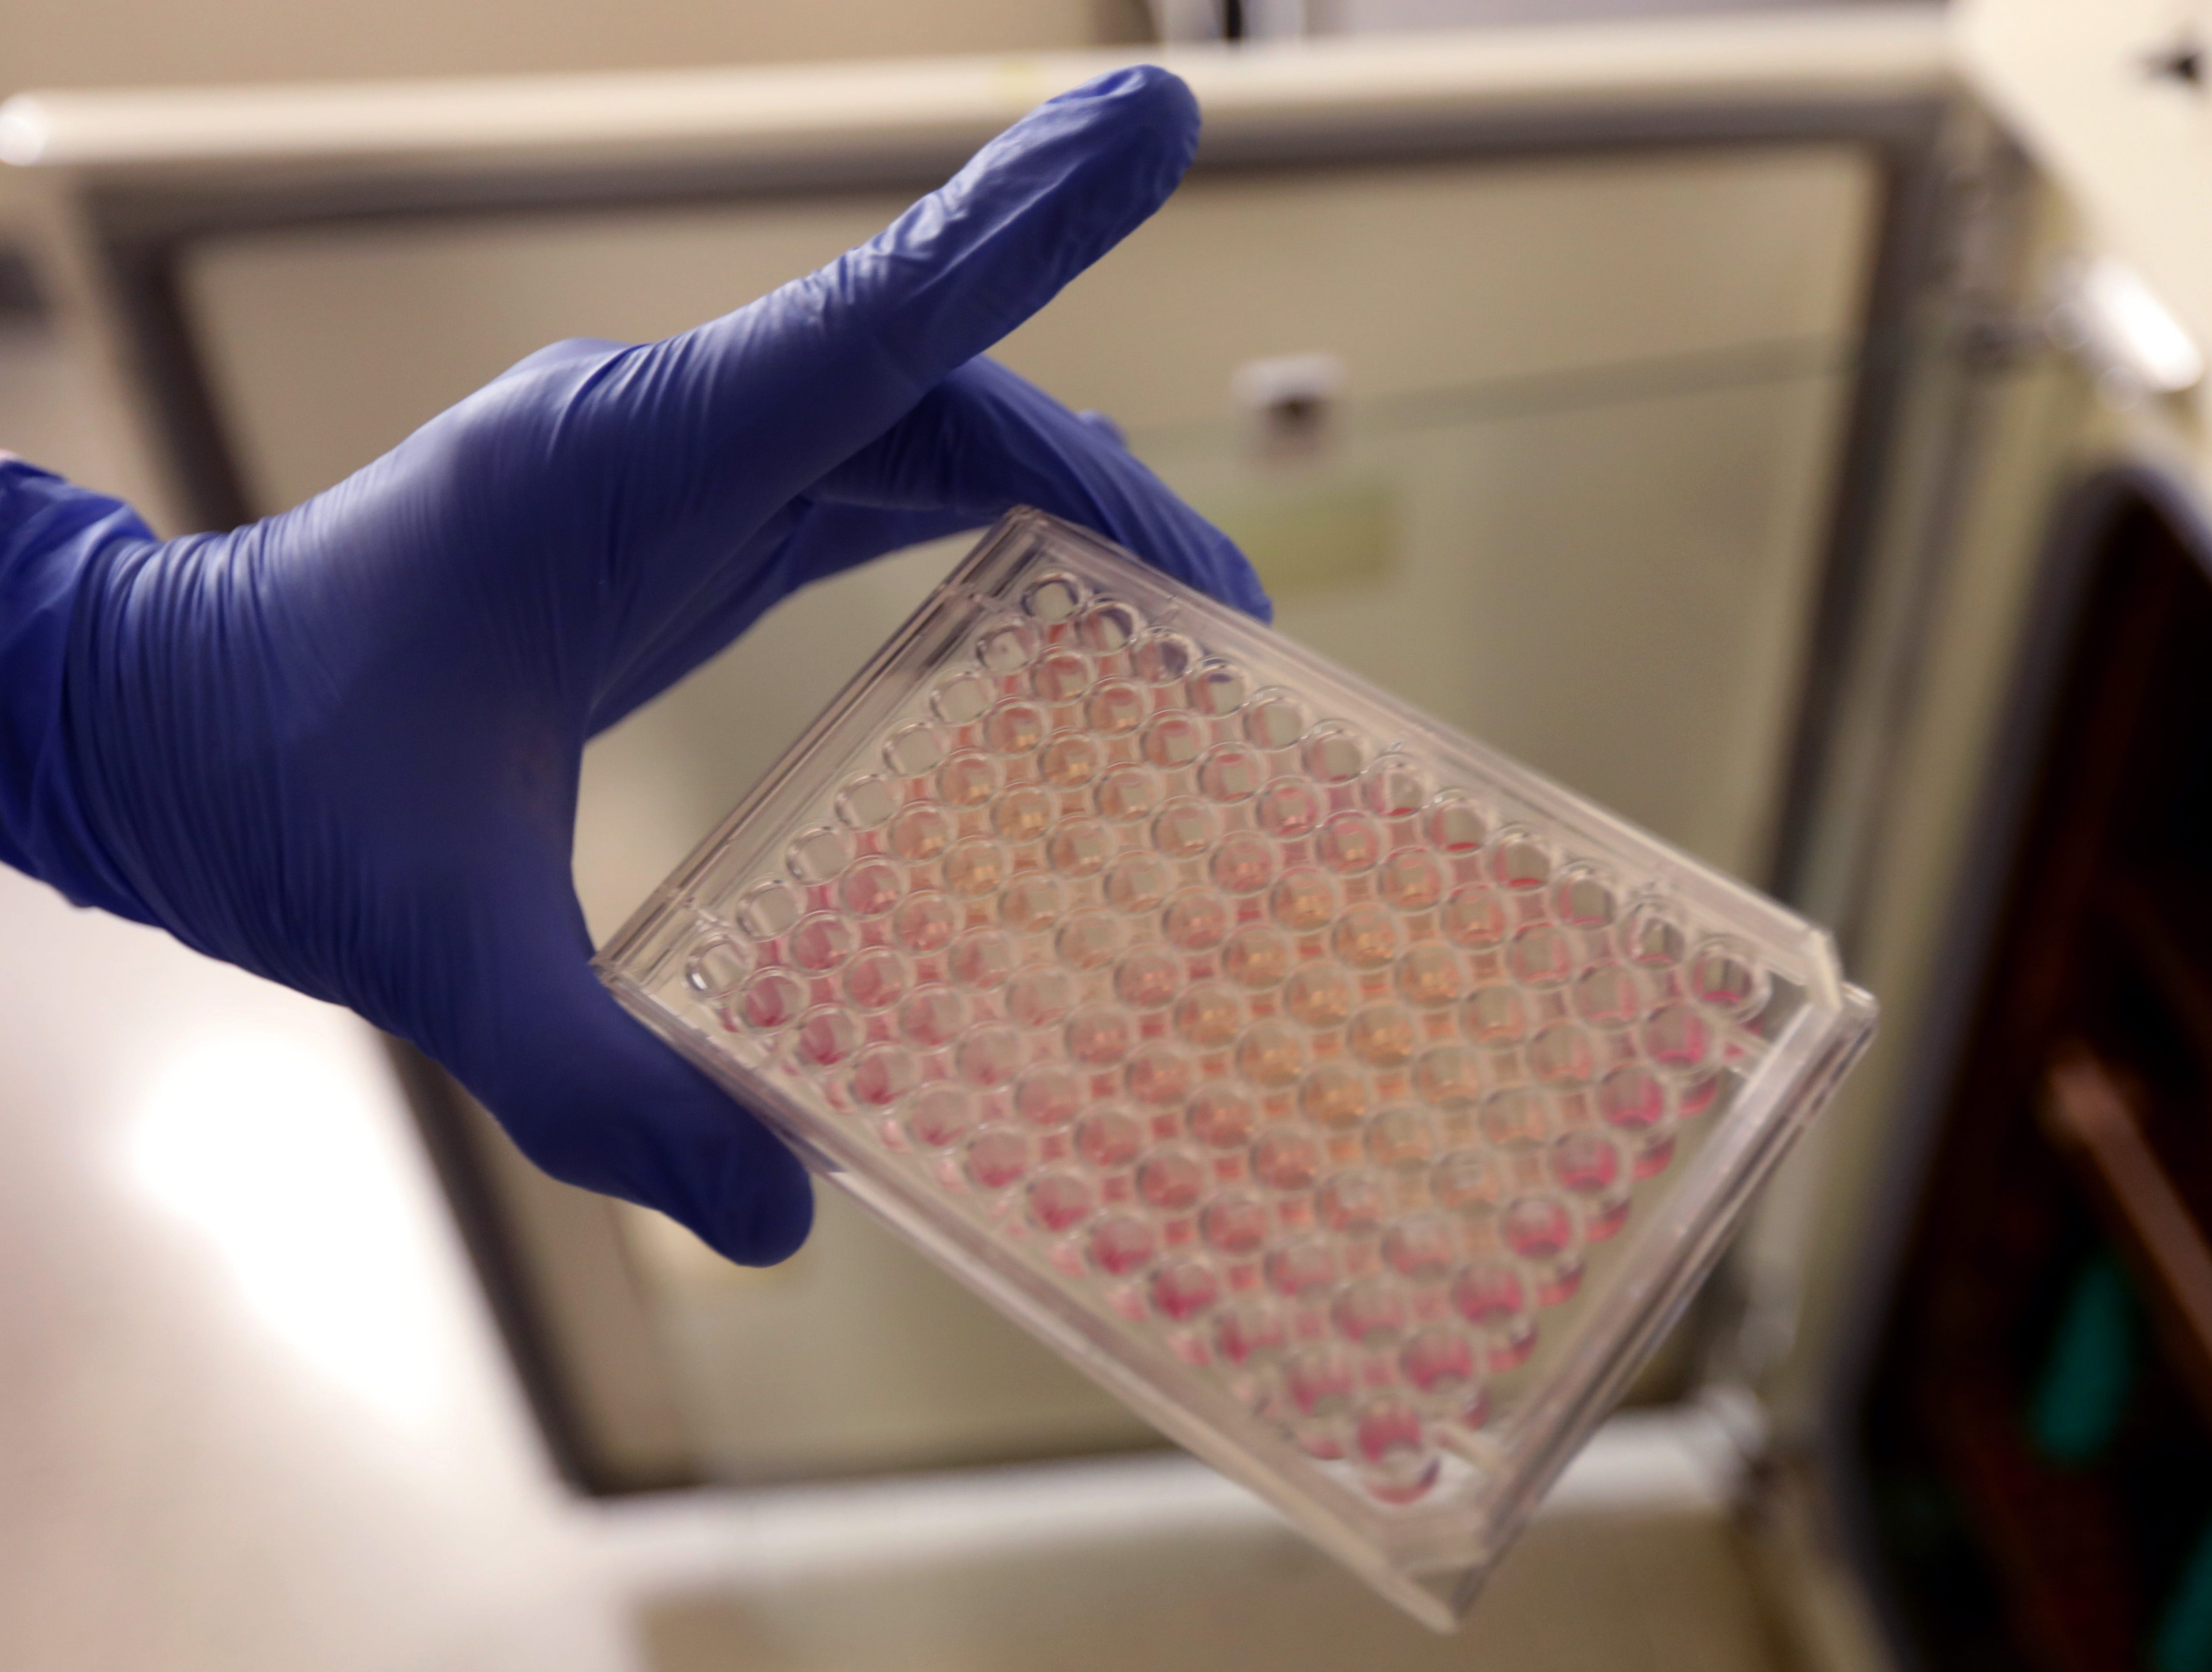 Benhur Lee handles samples of cells used in his COVID-19 research in his lab on Sept. 29, 2020 in New York City.